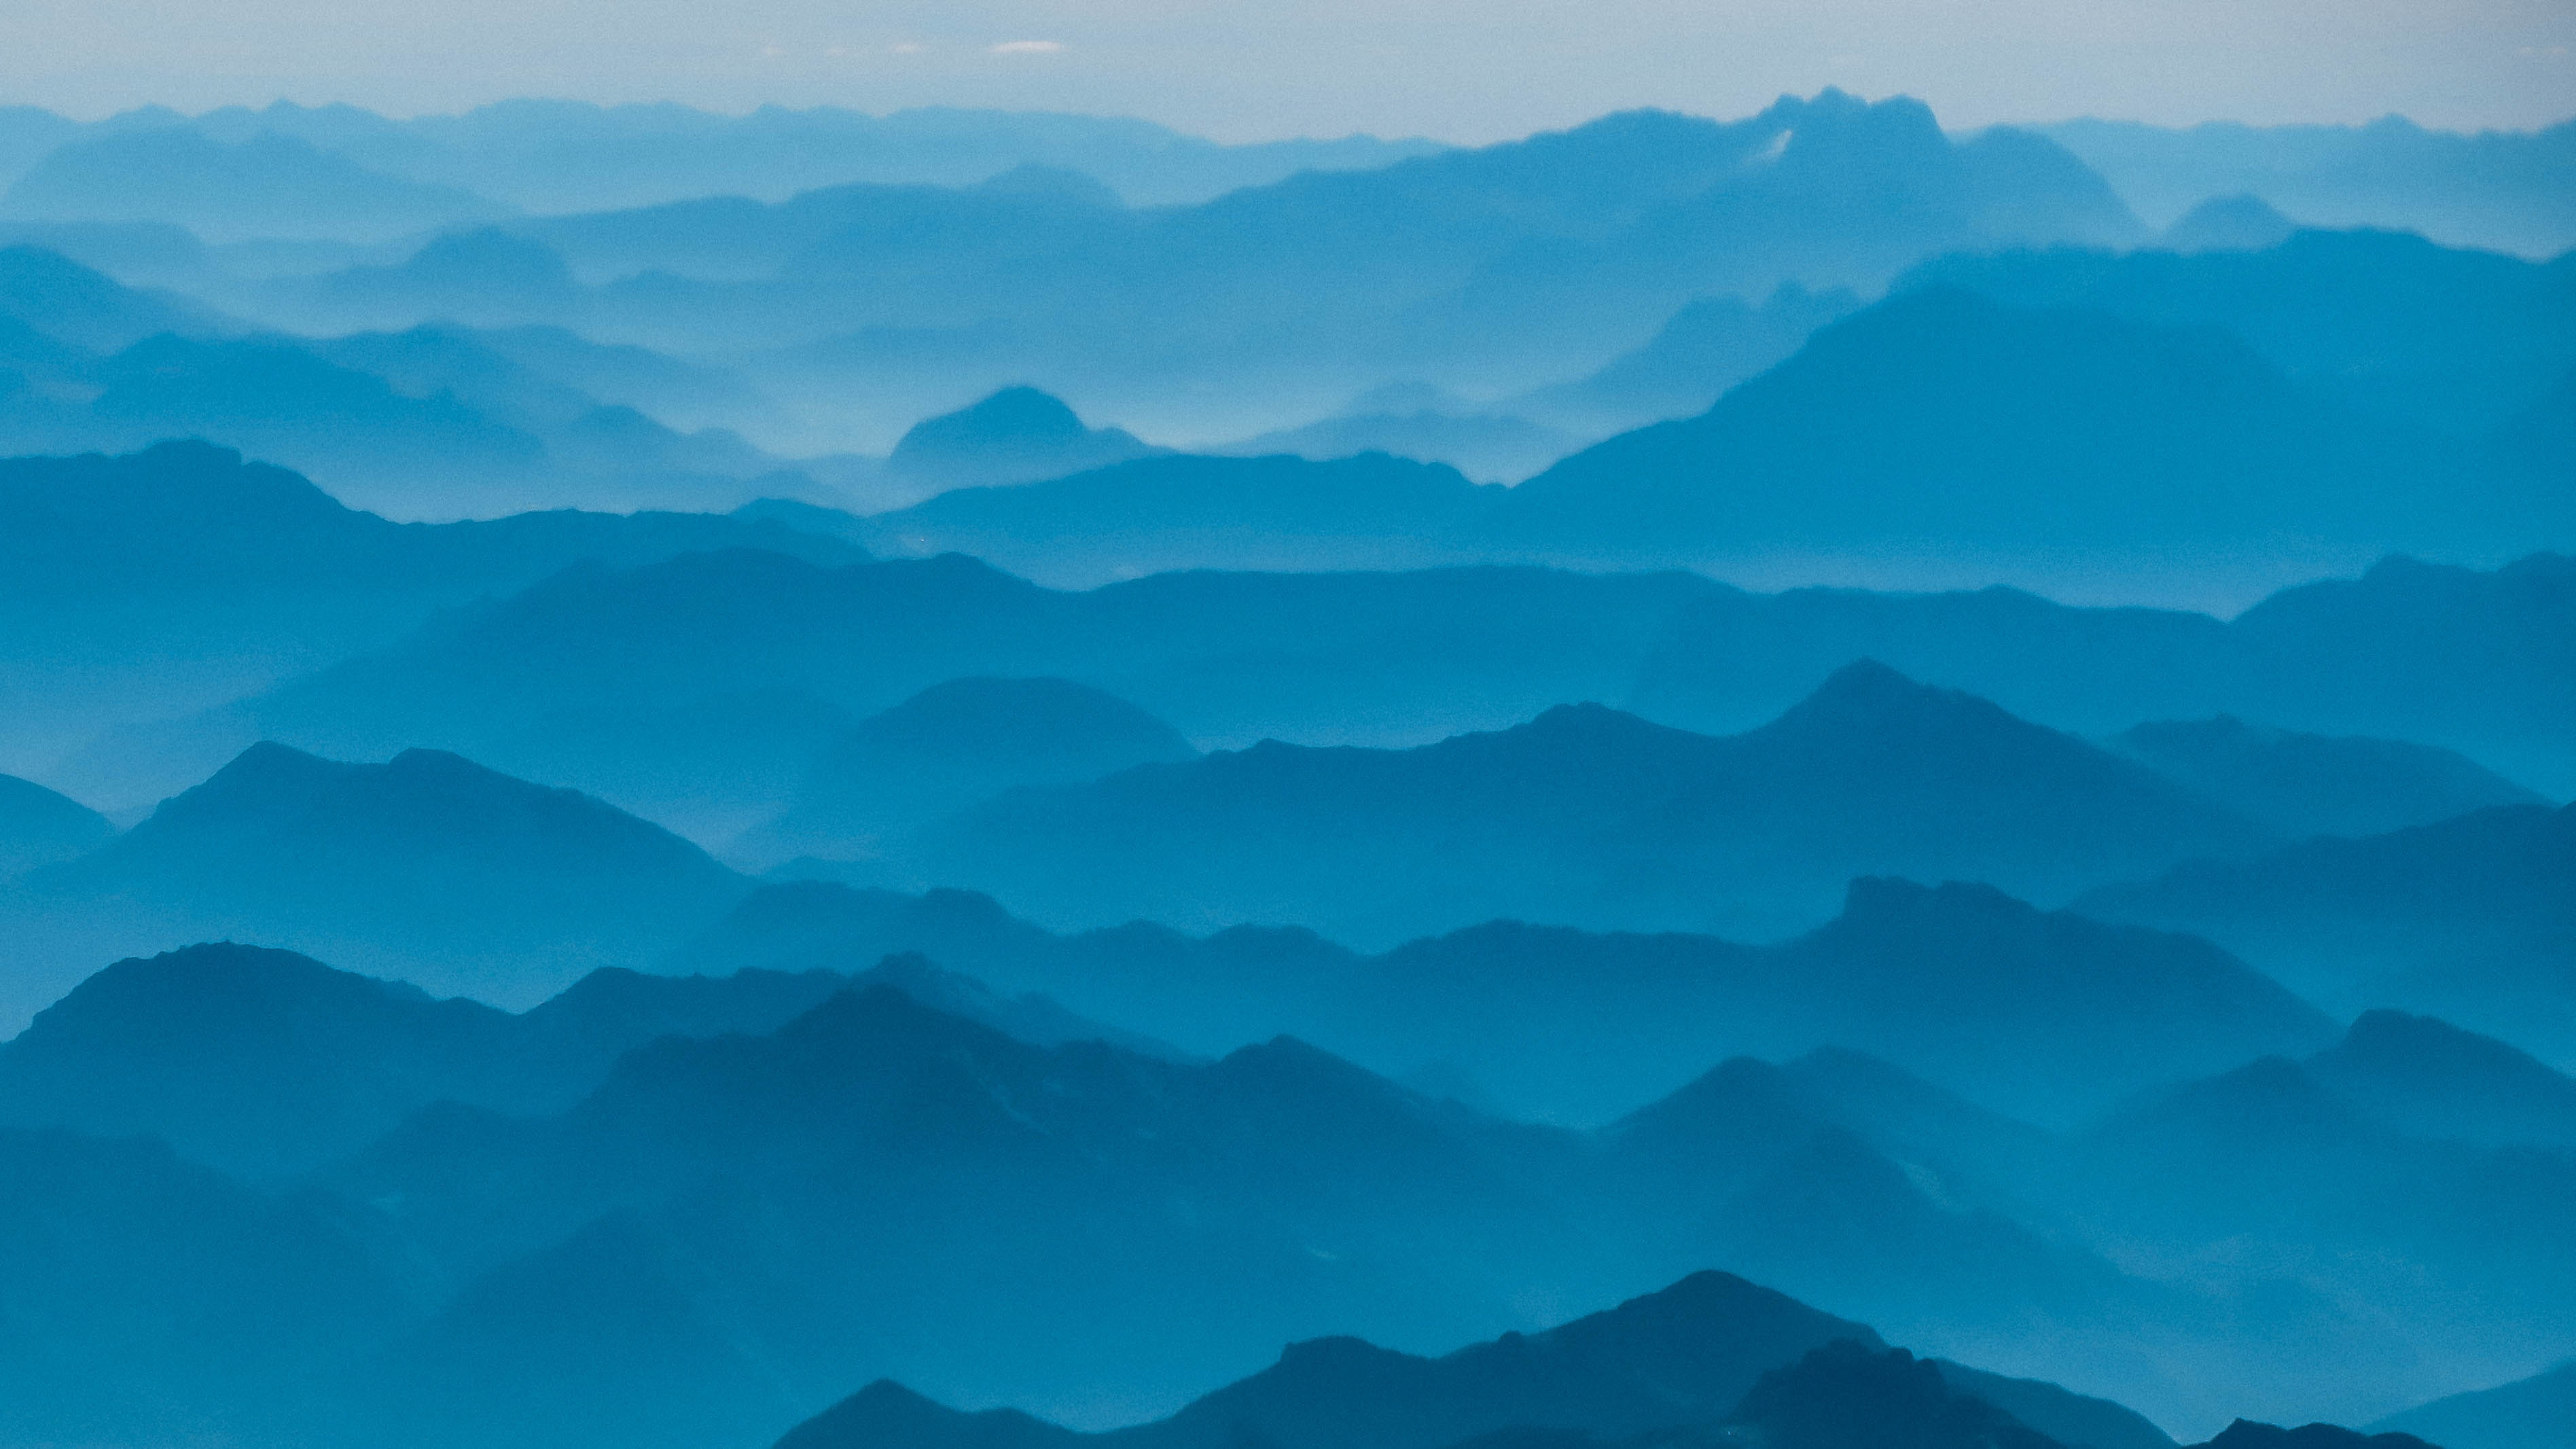 A series of parallel mountain ridges under a blue haze